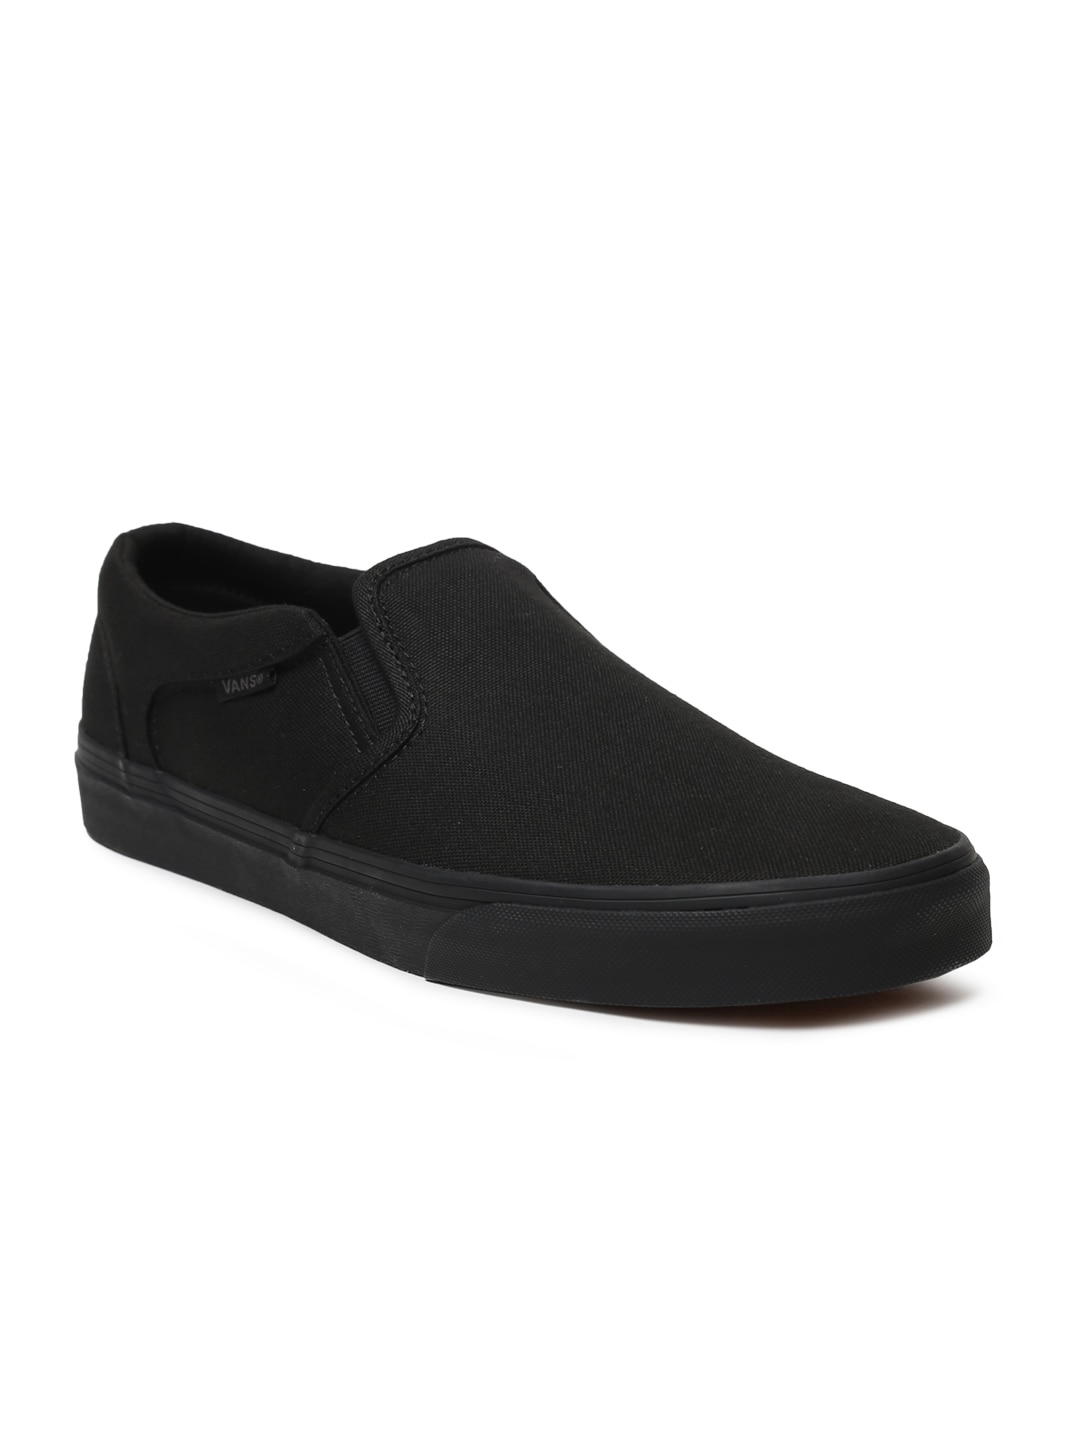 71c6e5d872 Vans Shoes - Buy Vans Shoes Online in India